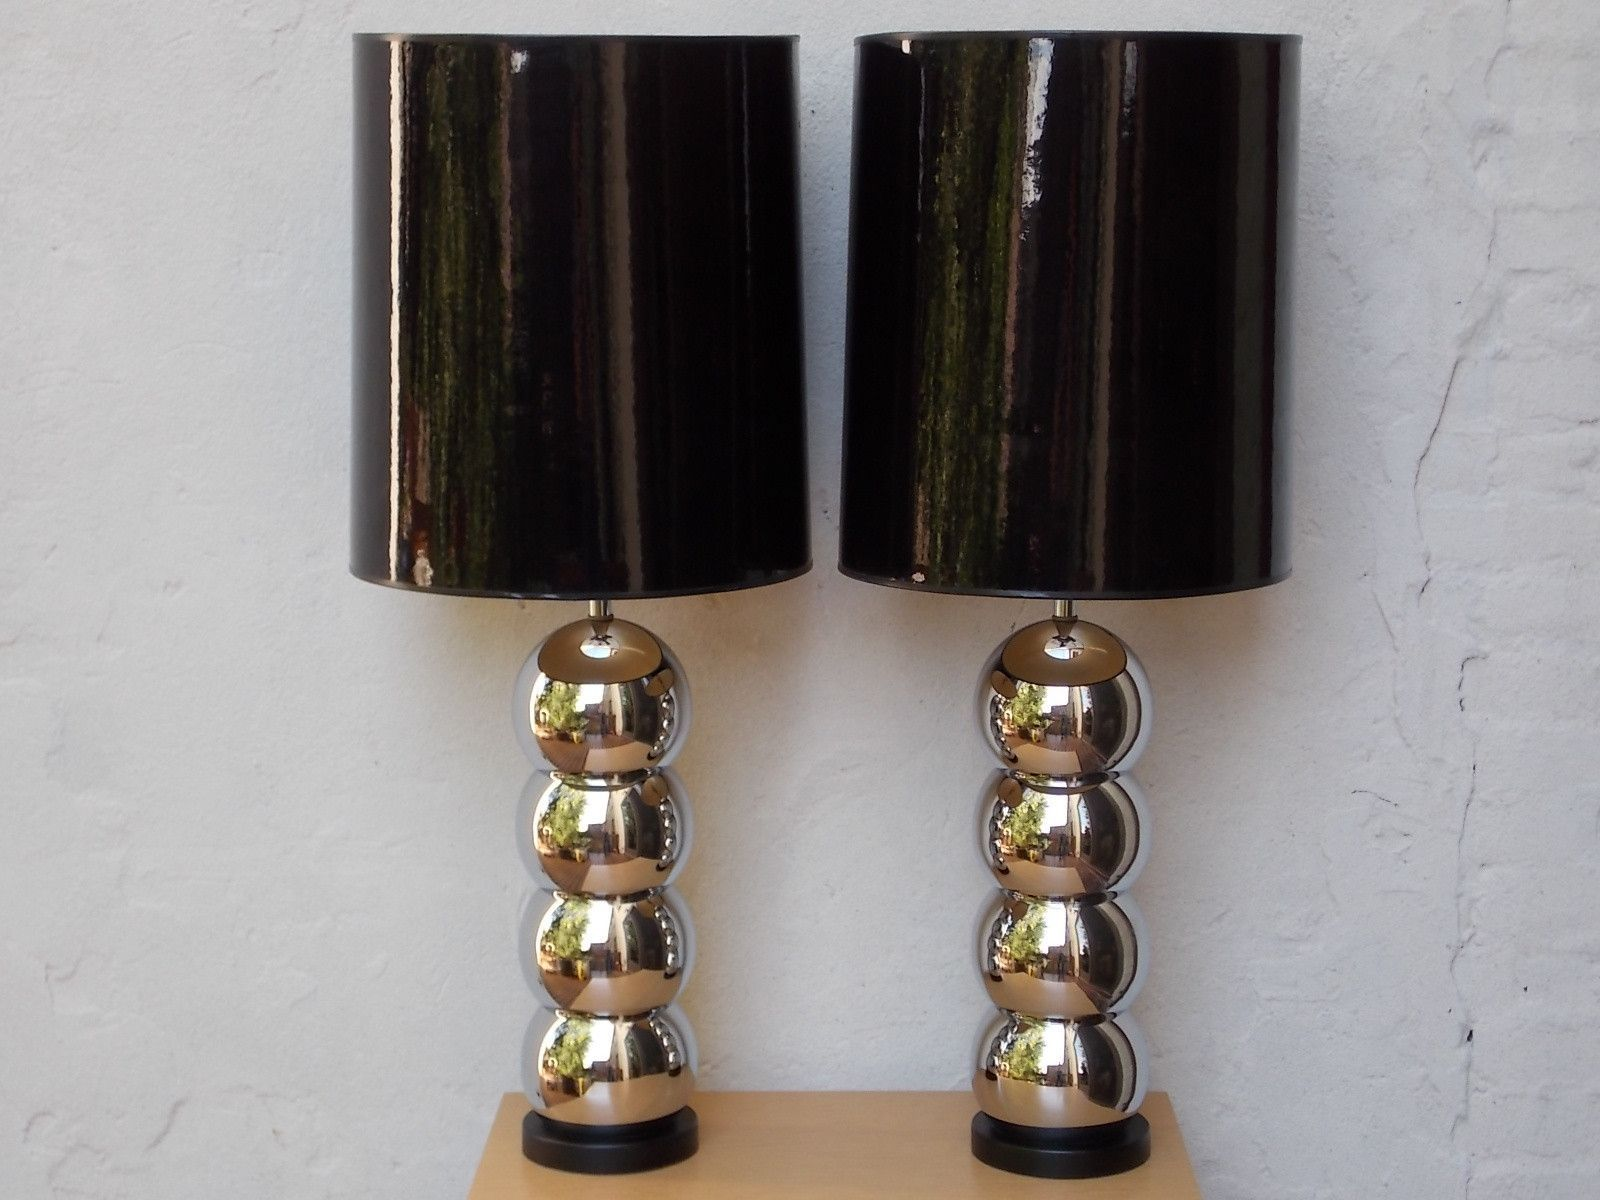 Pair Chrome Ball Lamps with Original Black Shades in Mint Condition